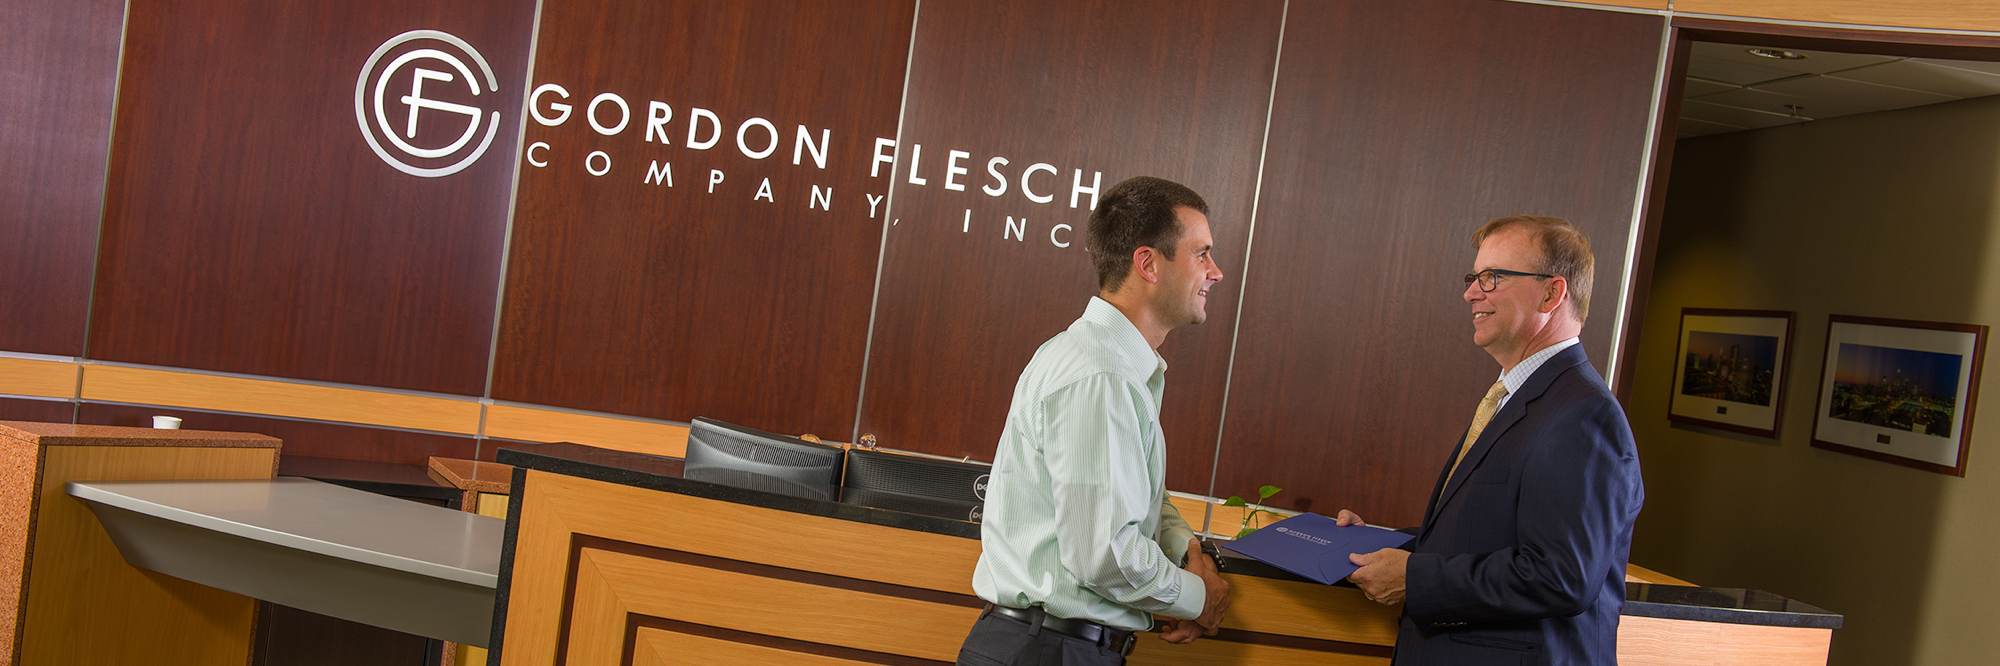 two-men-talking-at-desk-in-front-of-gordon-flesch-sign.jpg